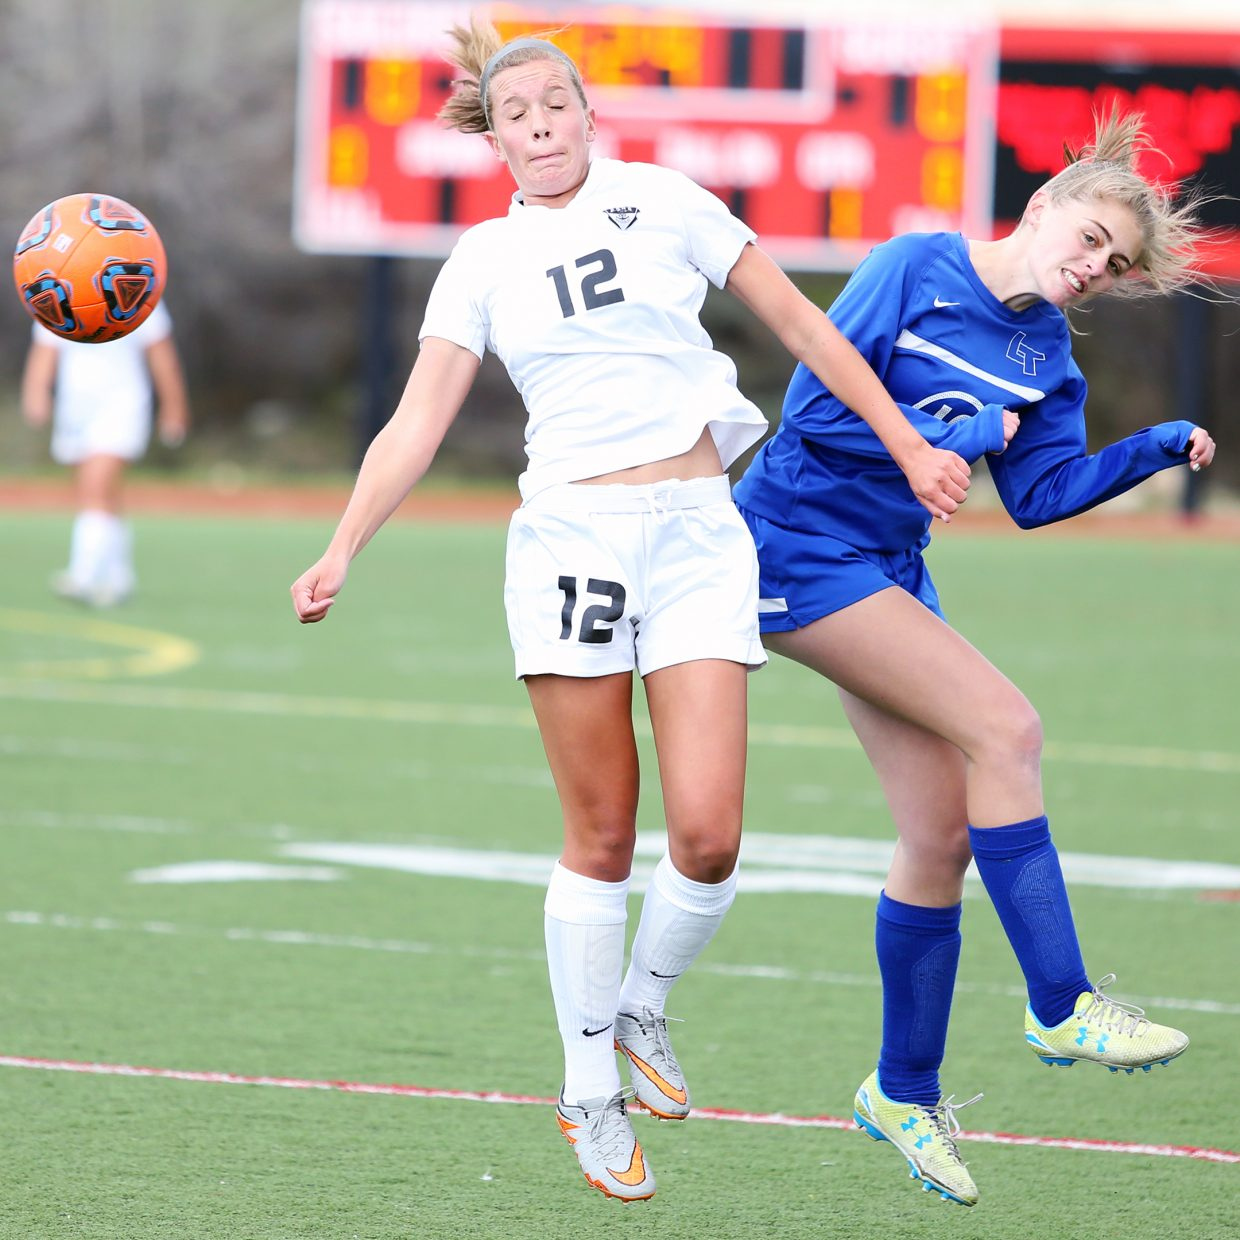 Steamboat senior Natalie Bohlmann, left, competes with a Longmont player for possession Wednesday at Gardner Field.